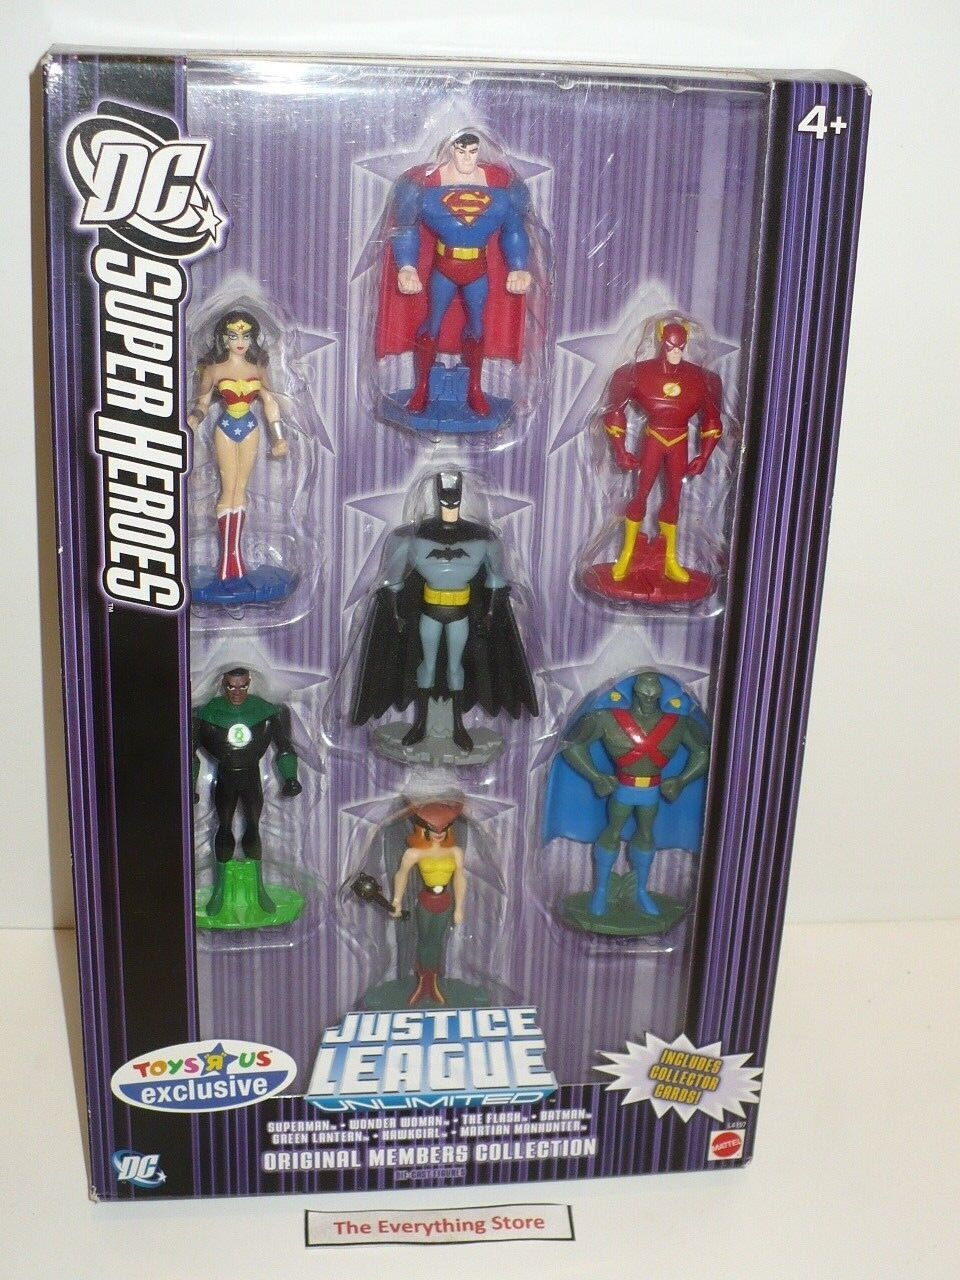 MATTEL JUSTICE LEAGUE UNLIMITED DIE CAST METAL 3 INCH TALL FIGURE SET FREE SHIP